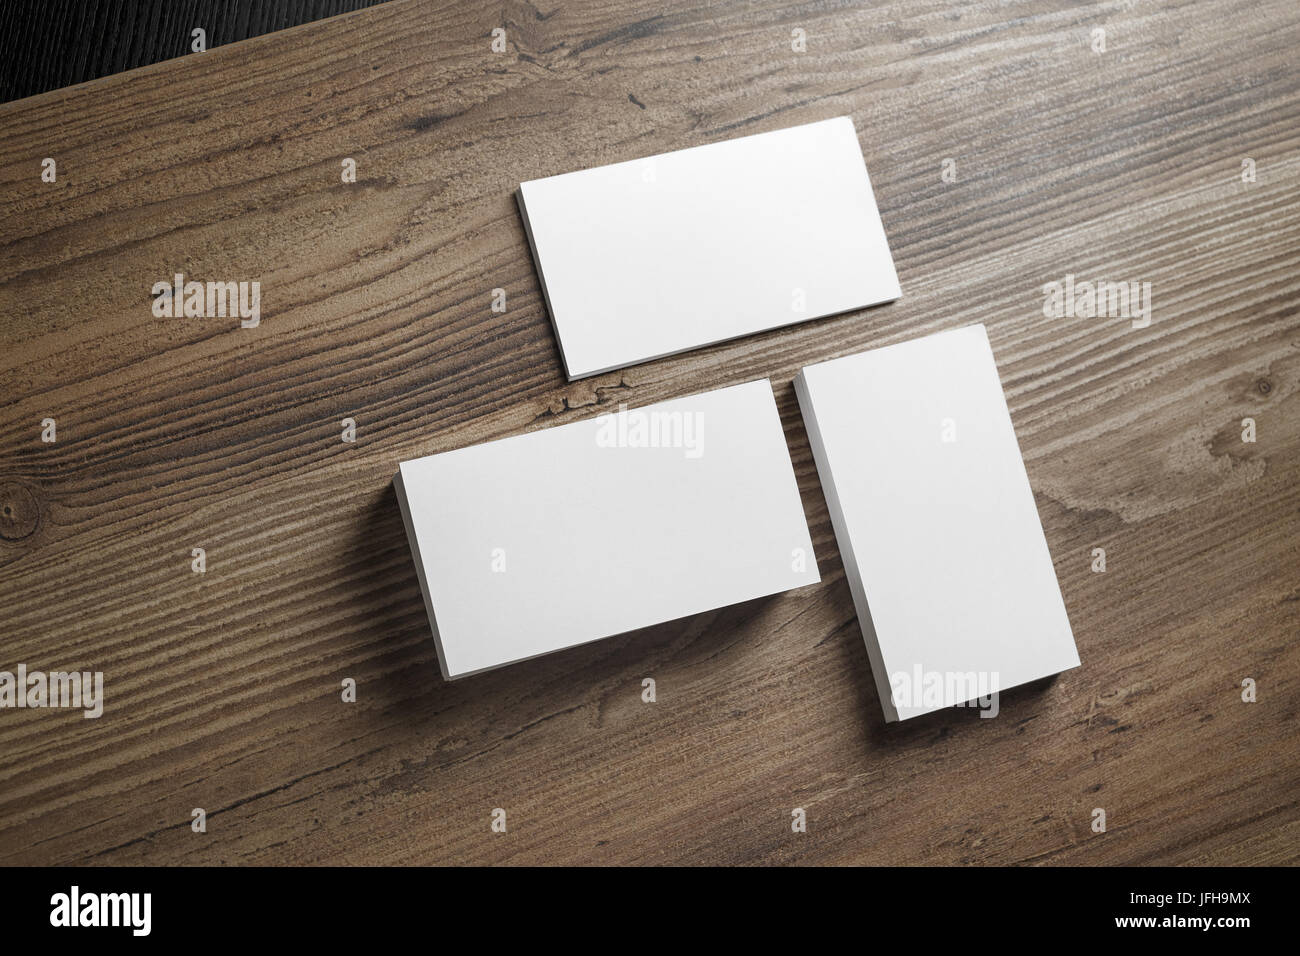 Piles of blank business cards Stock Photo: 147283610 - Alamy